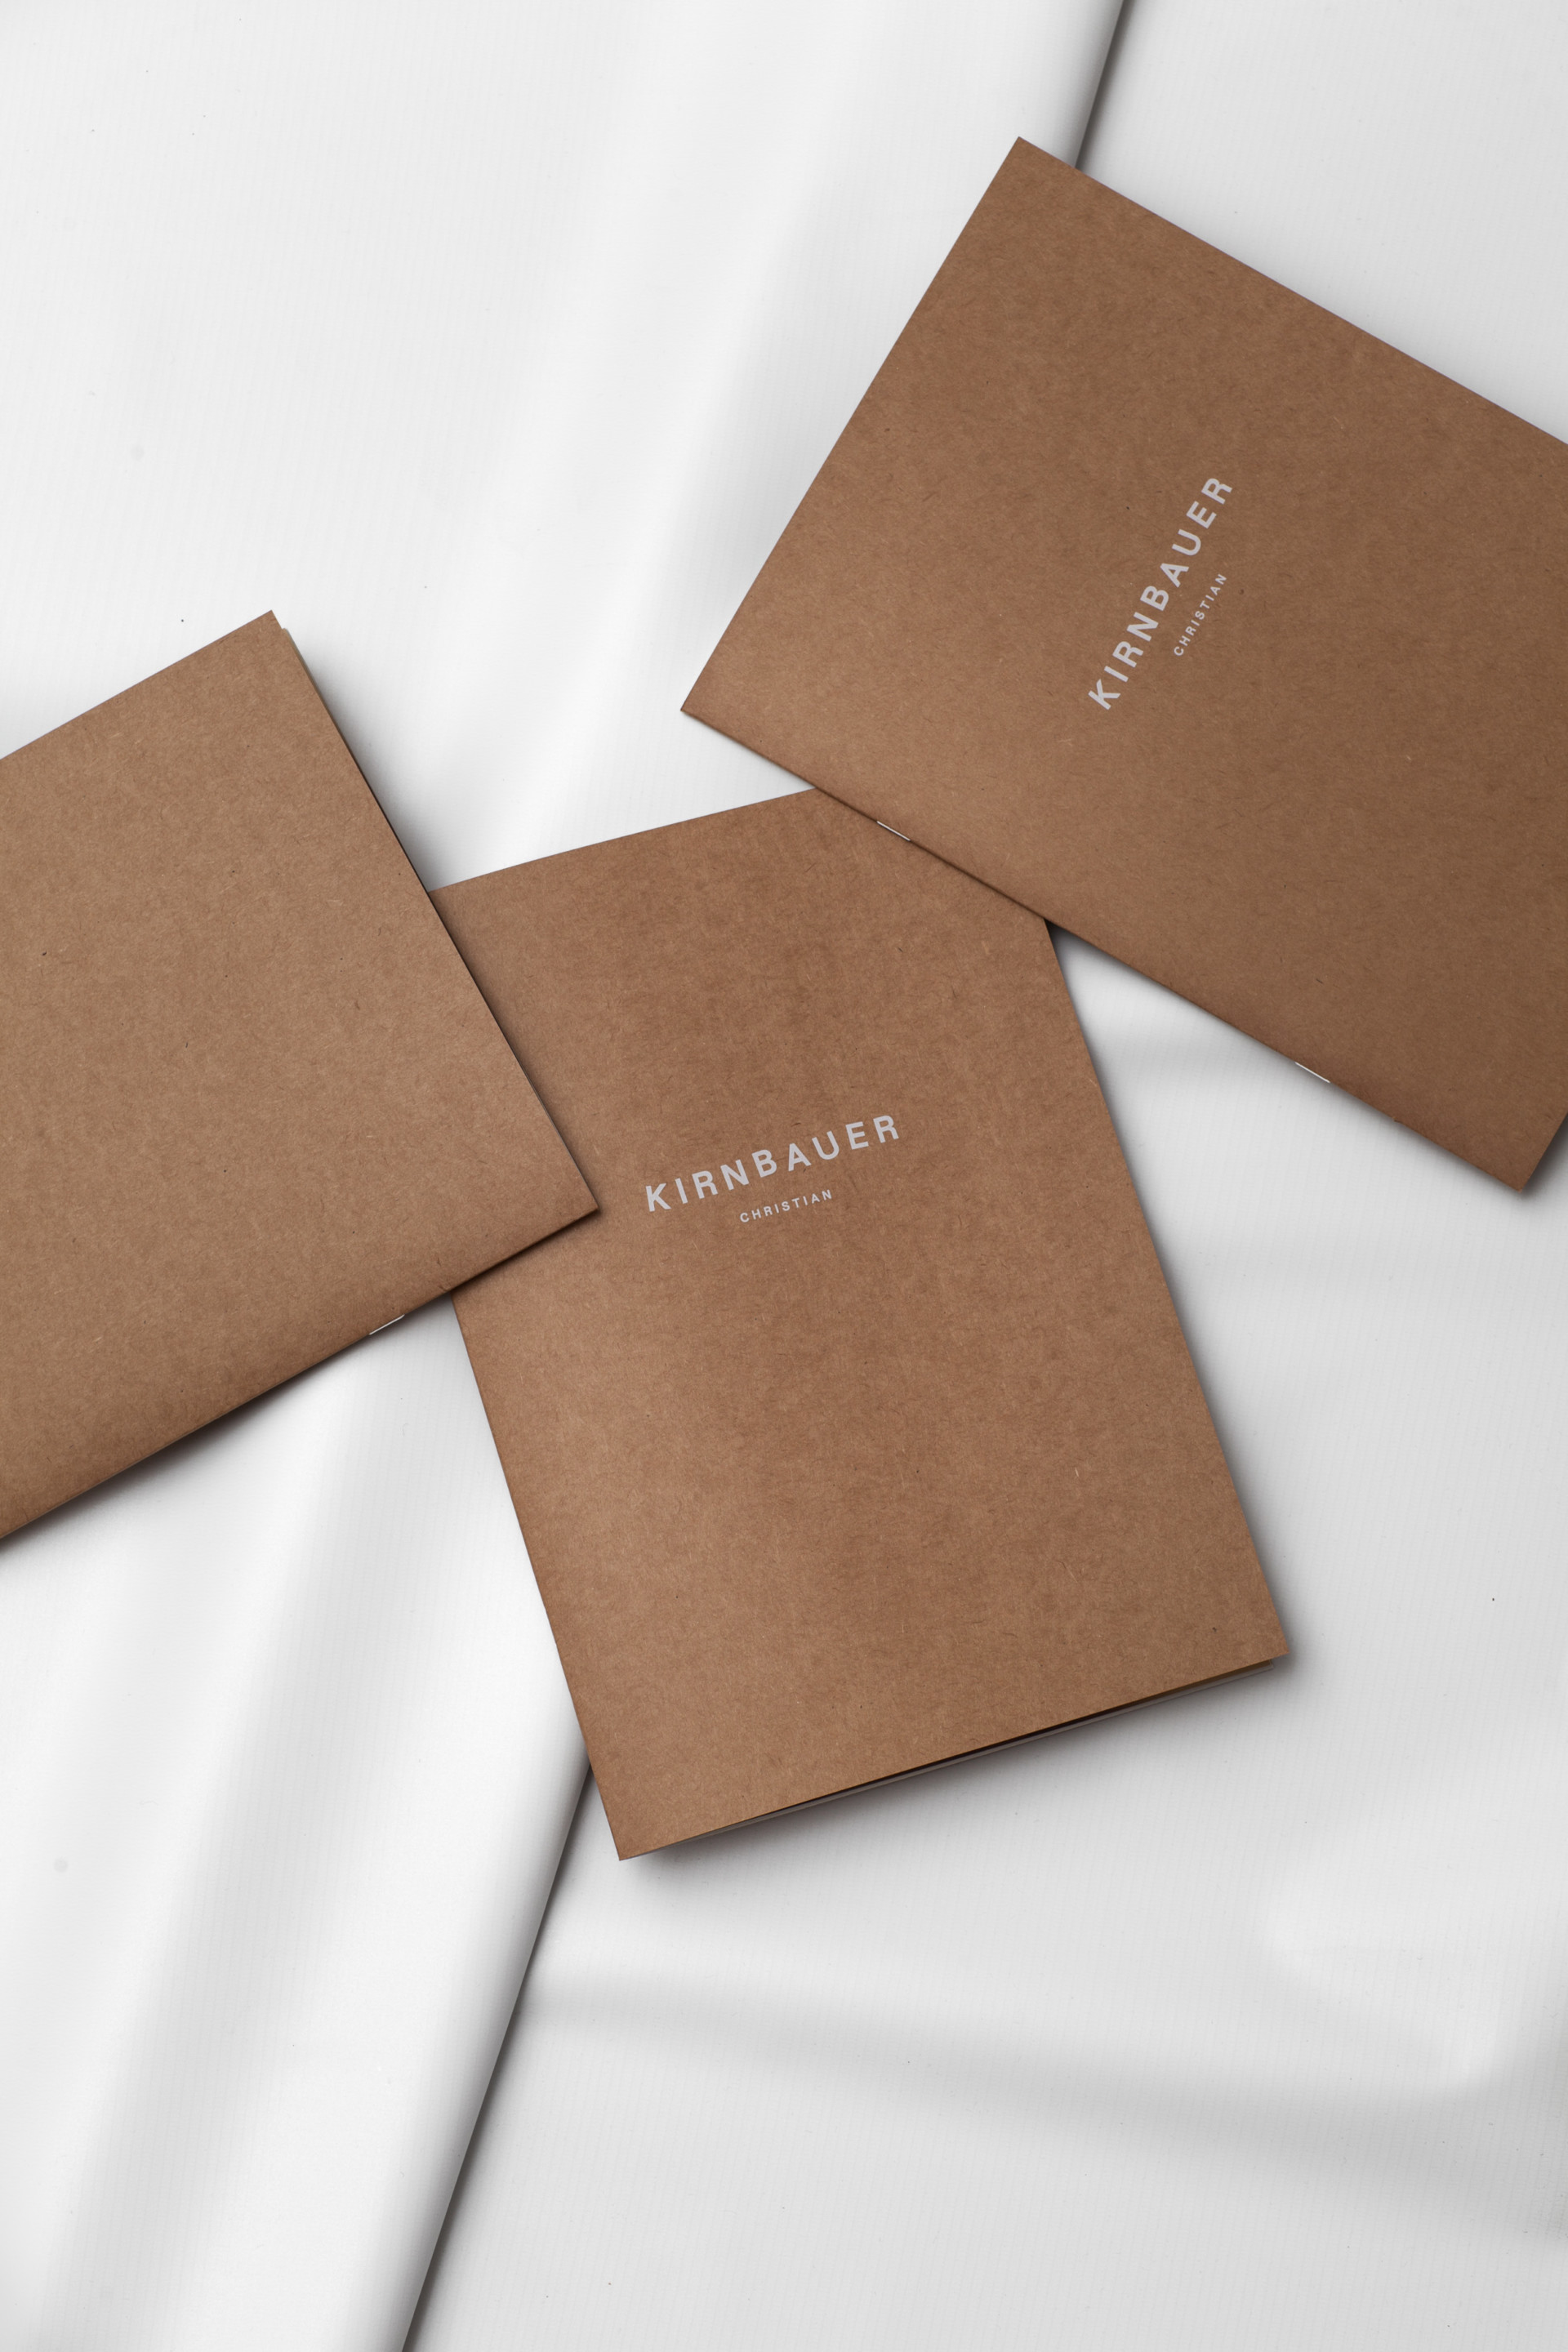 Bureau Rabensteiner Brands and Identities